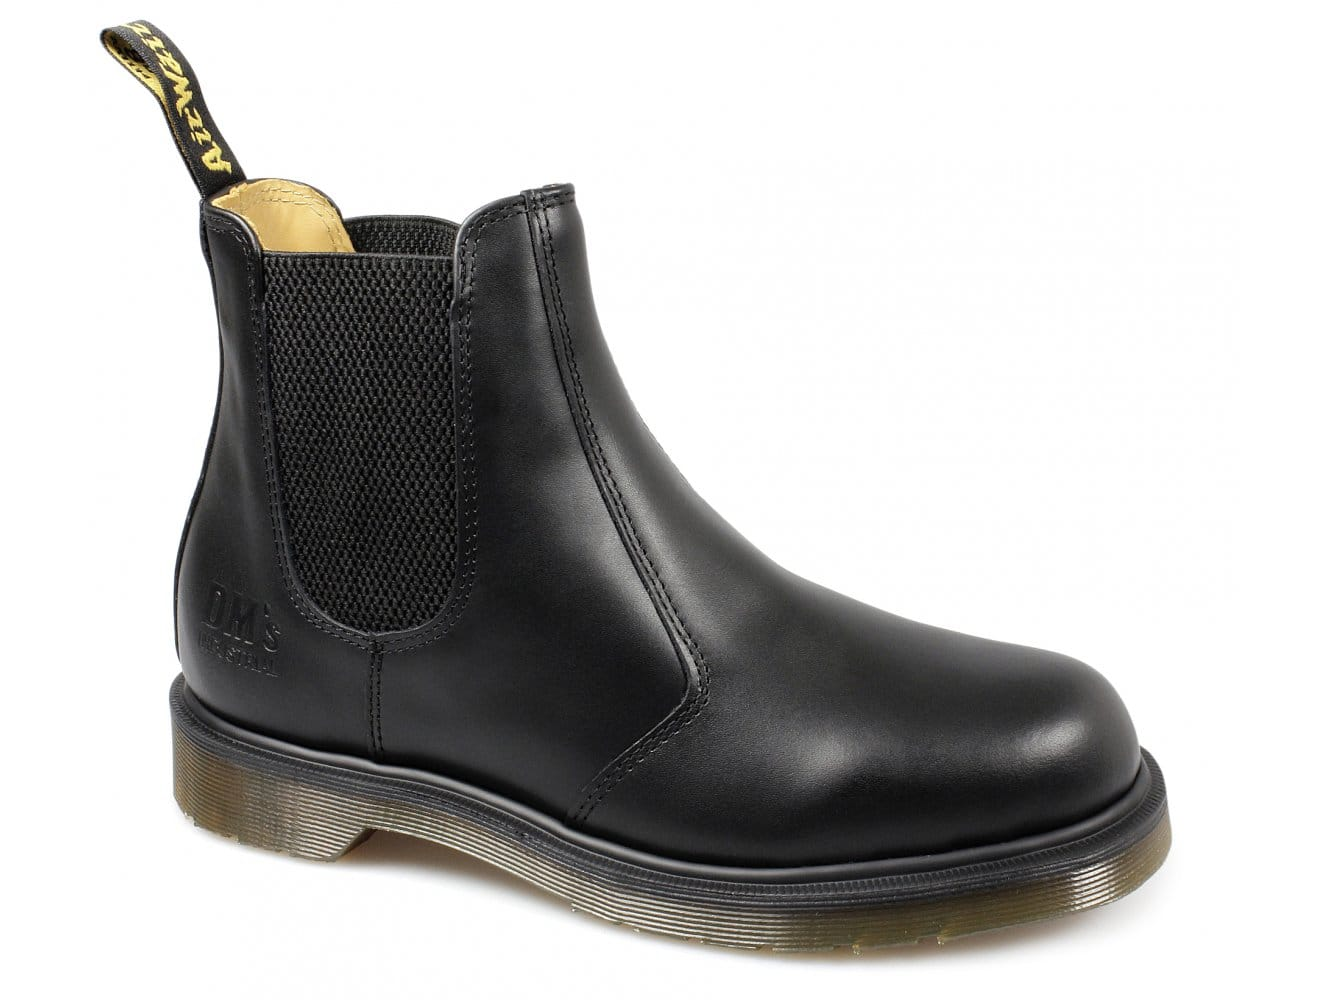 dr martens 8250 occupational leather industrial non safety dealer chelsea boots ebay. Black Bedroom Furniture Sets. Home Design Ideas